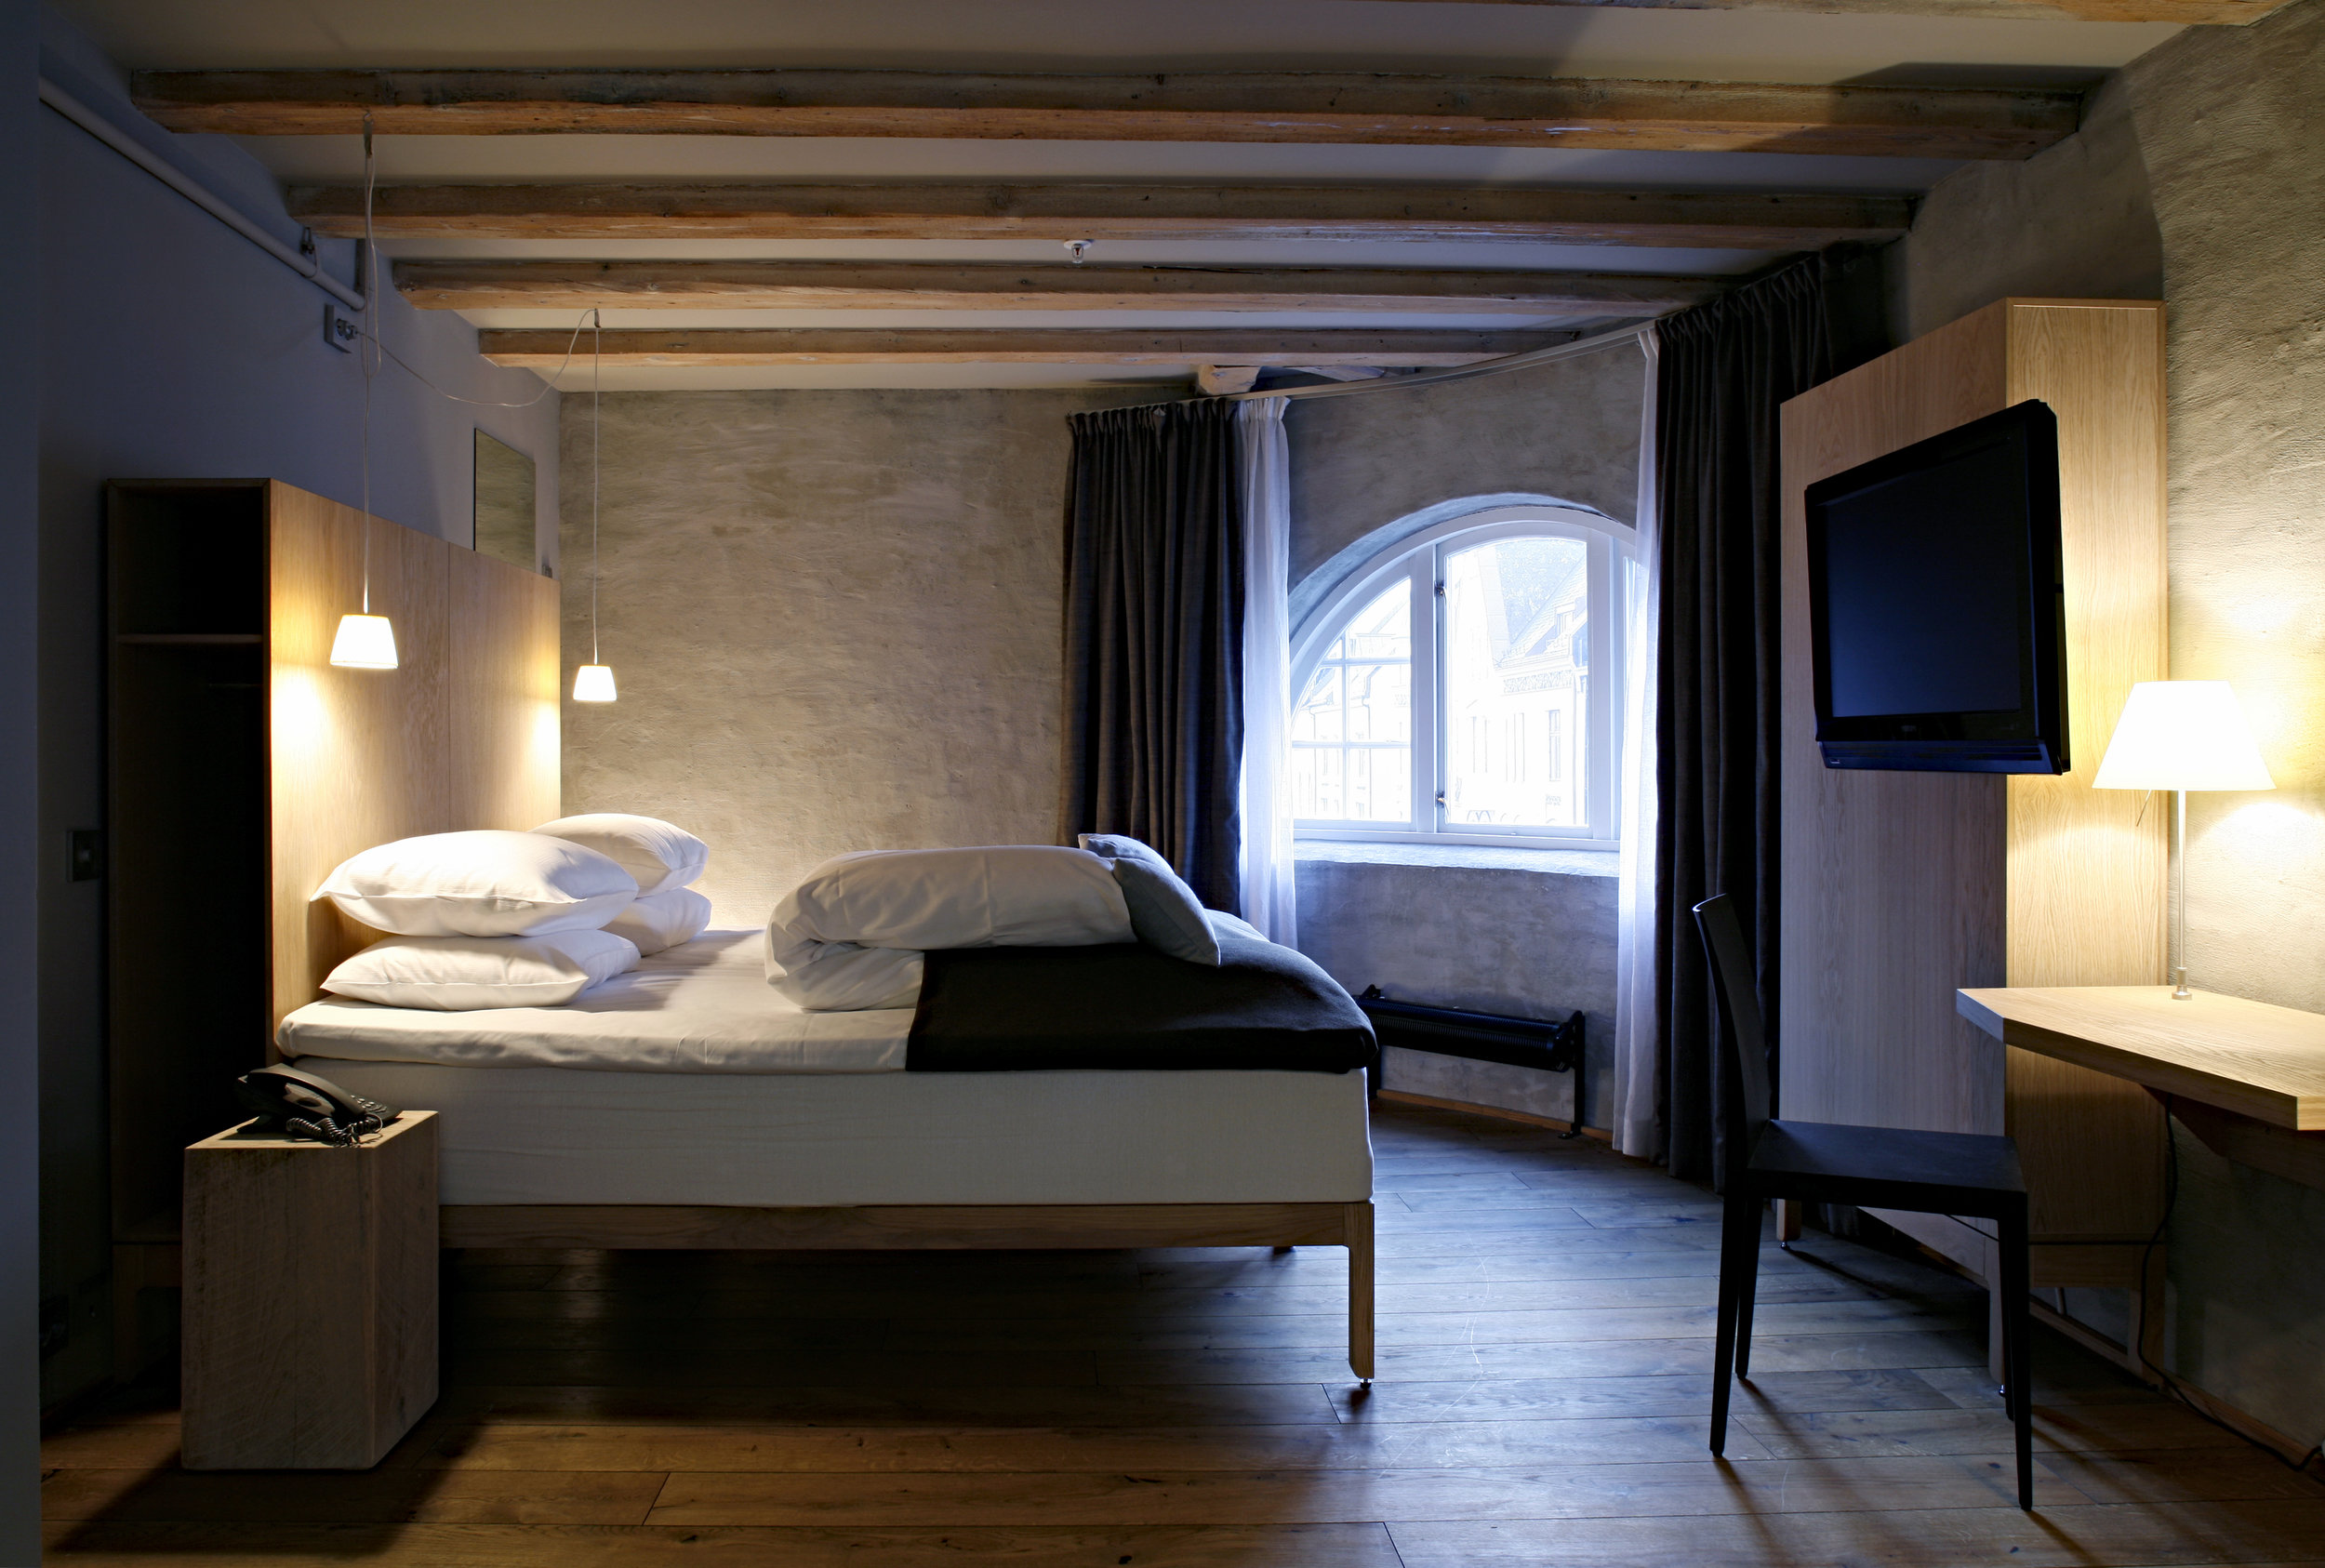 Hotel Brosundet Ålesund Norway, cosy hotel room with raw oak wood, interior design by GARDE. Mads Emil Garde